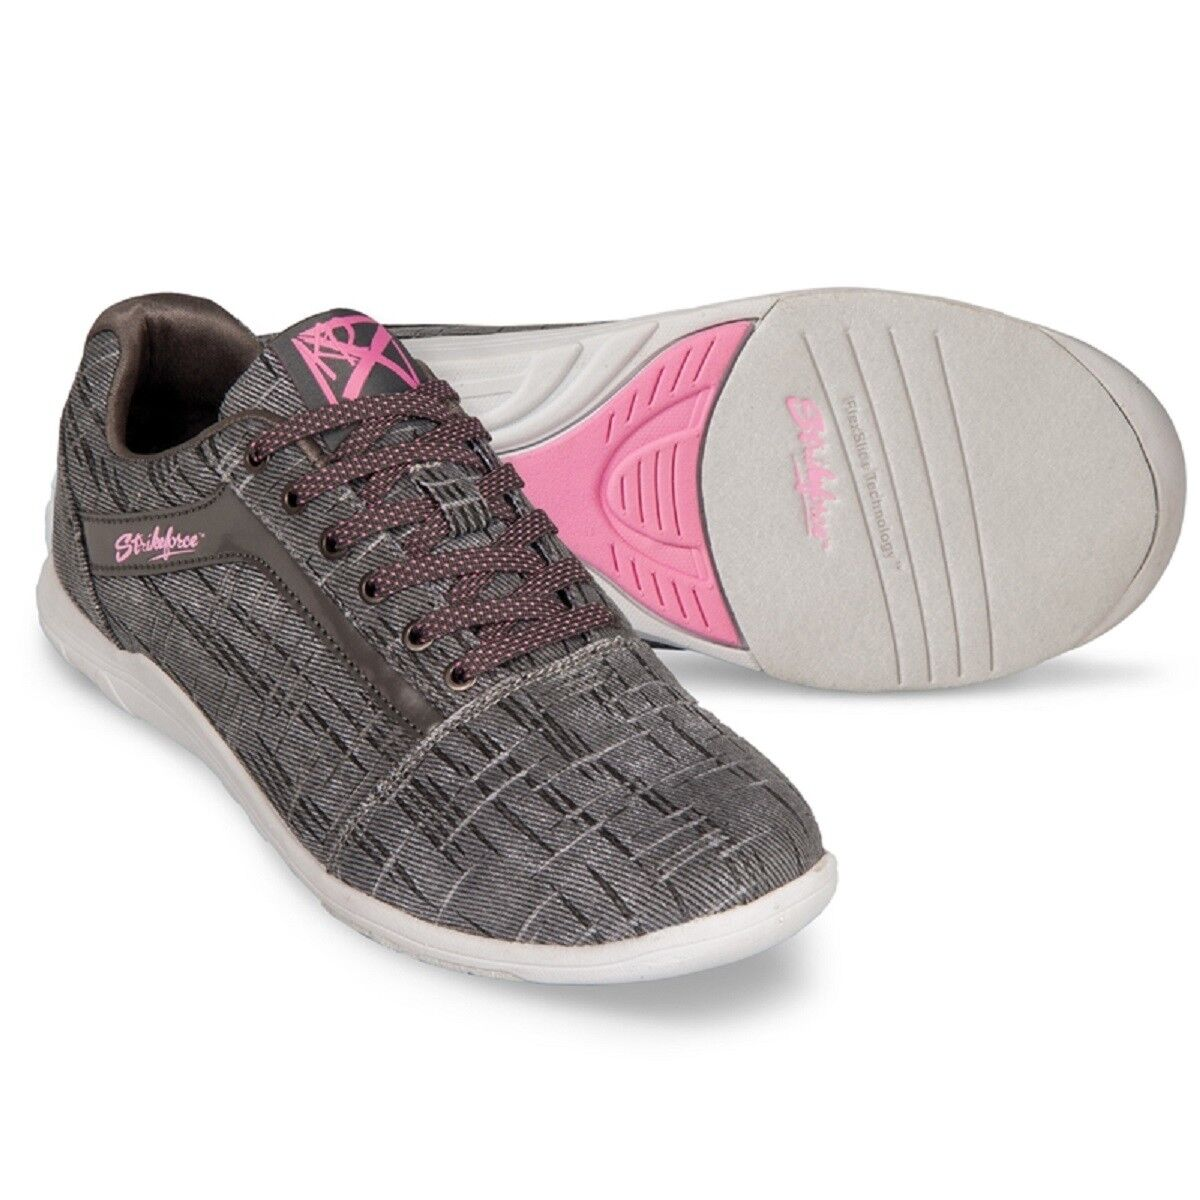 Women's KR NOVA LITE Grey with Pink Highlights Bowling shoes Size 6 - 11